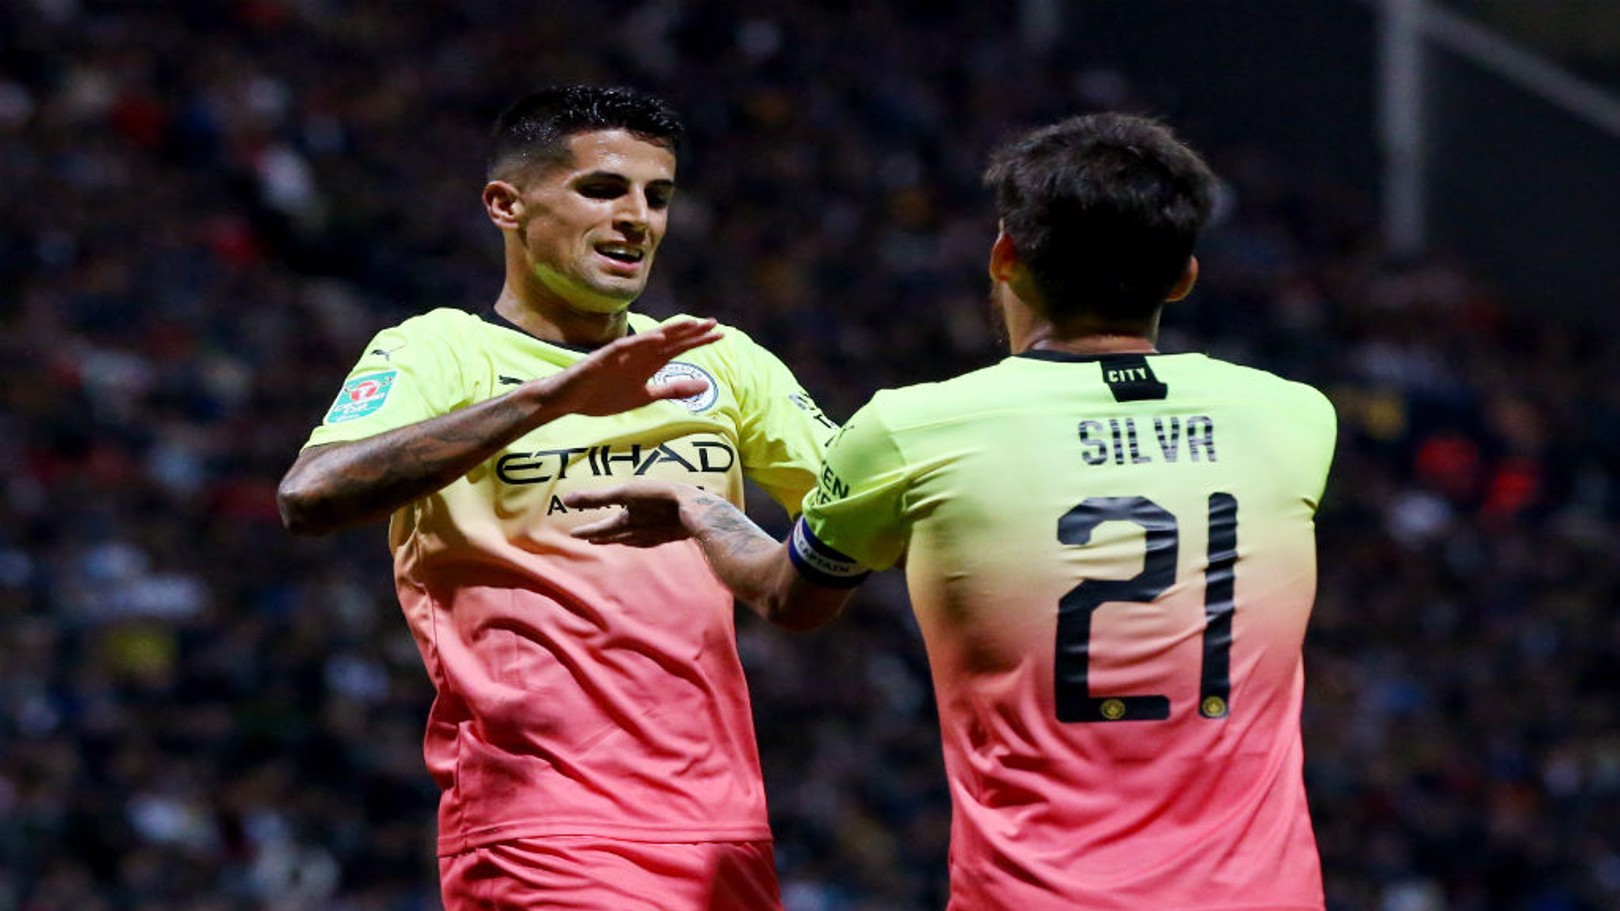 CAPTAIN FANTASTIC: Joao Cancelo celebrates with skipper David Silva, who orchestrated our third goal